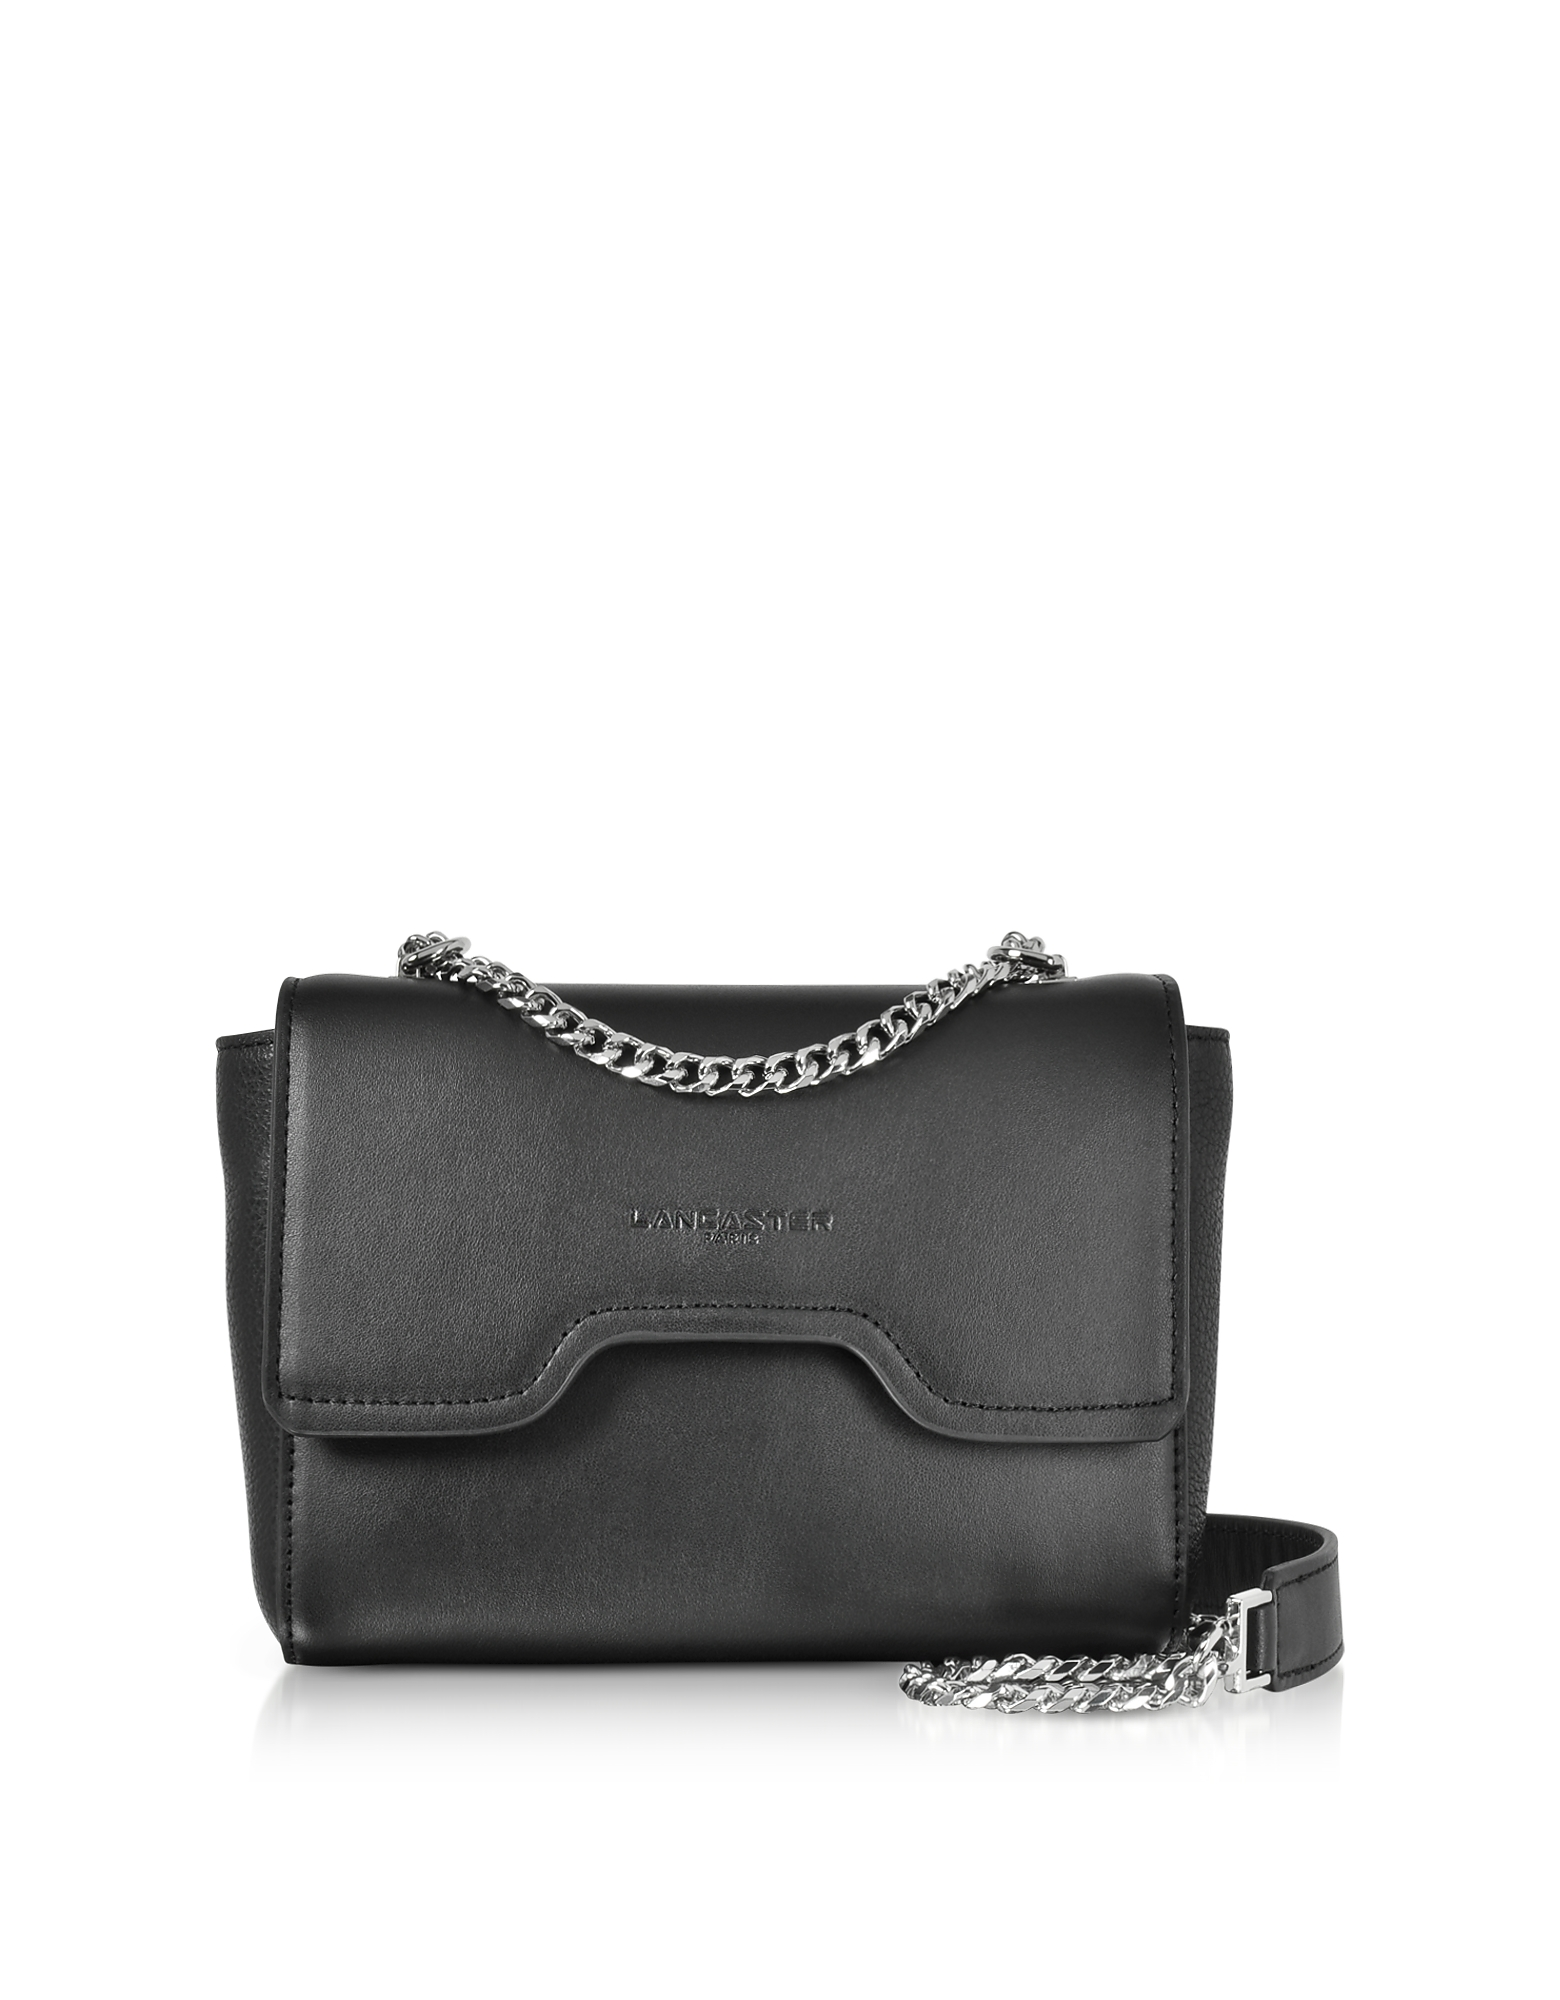 Lancaster Paris Handbags, Irene Smooth Leather Shoulder Bag